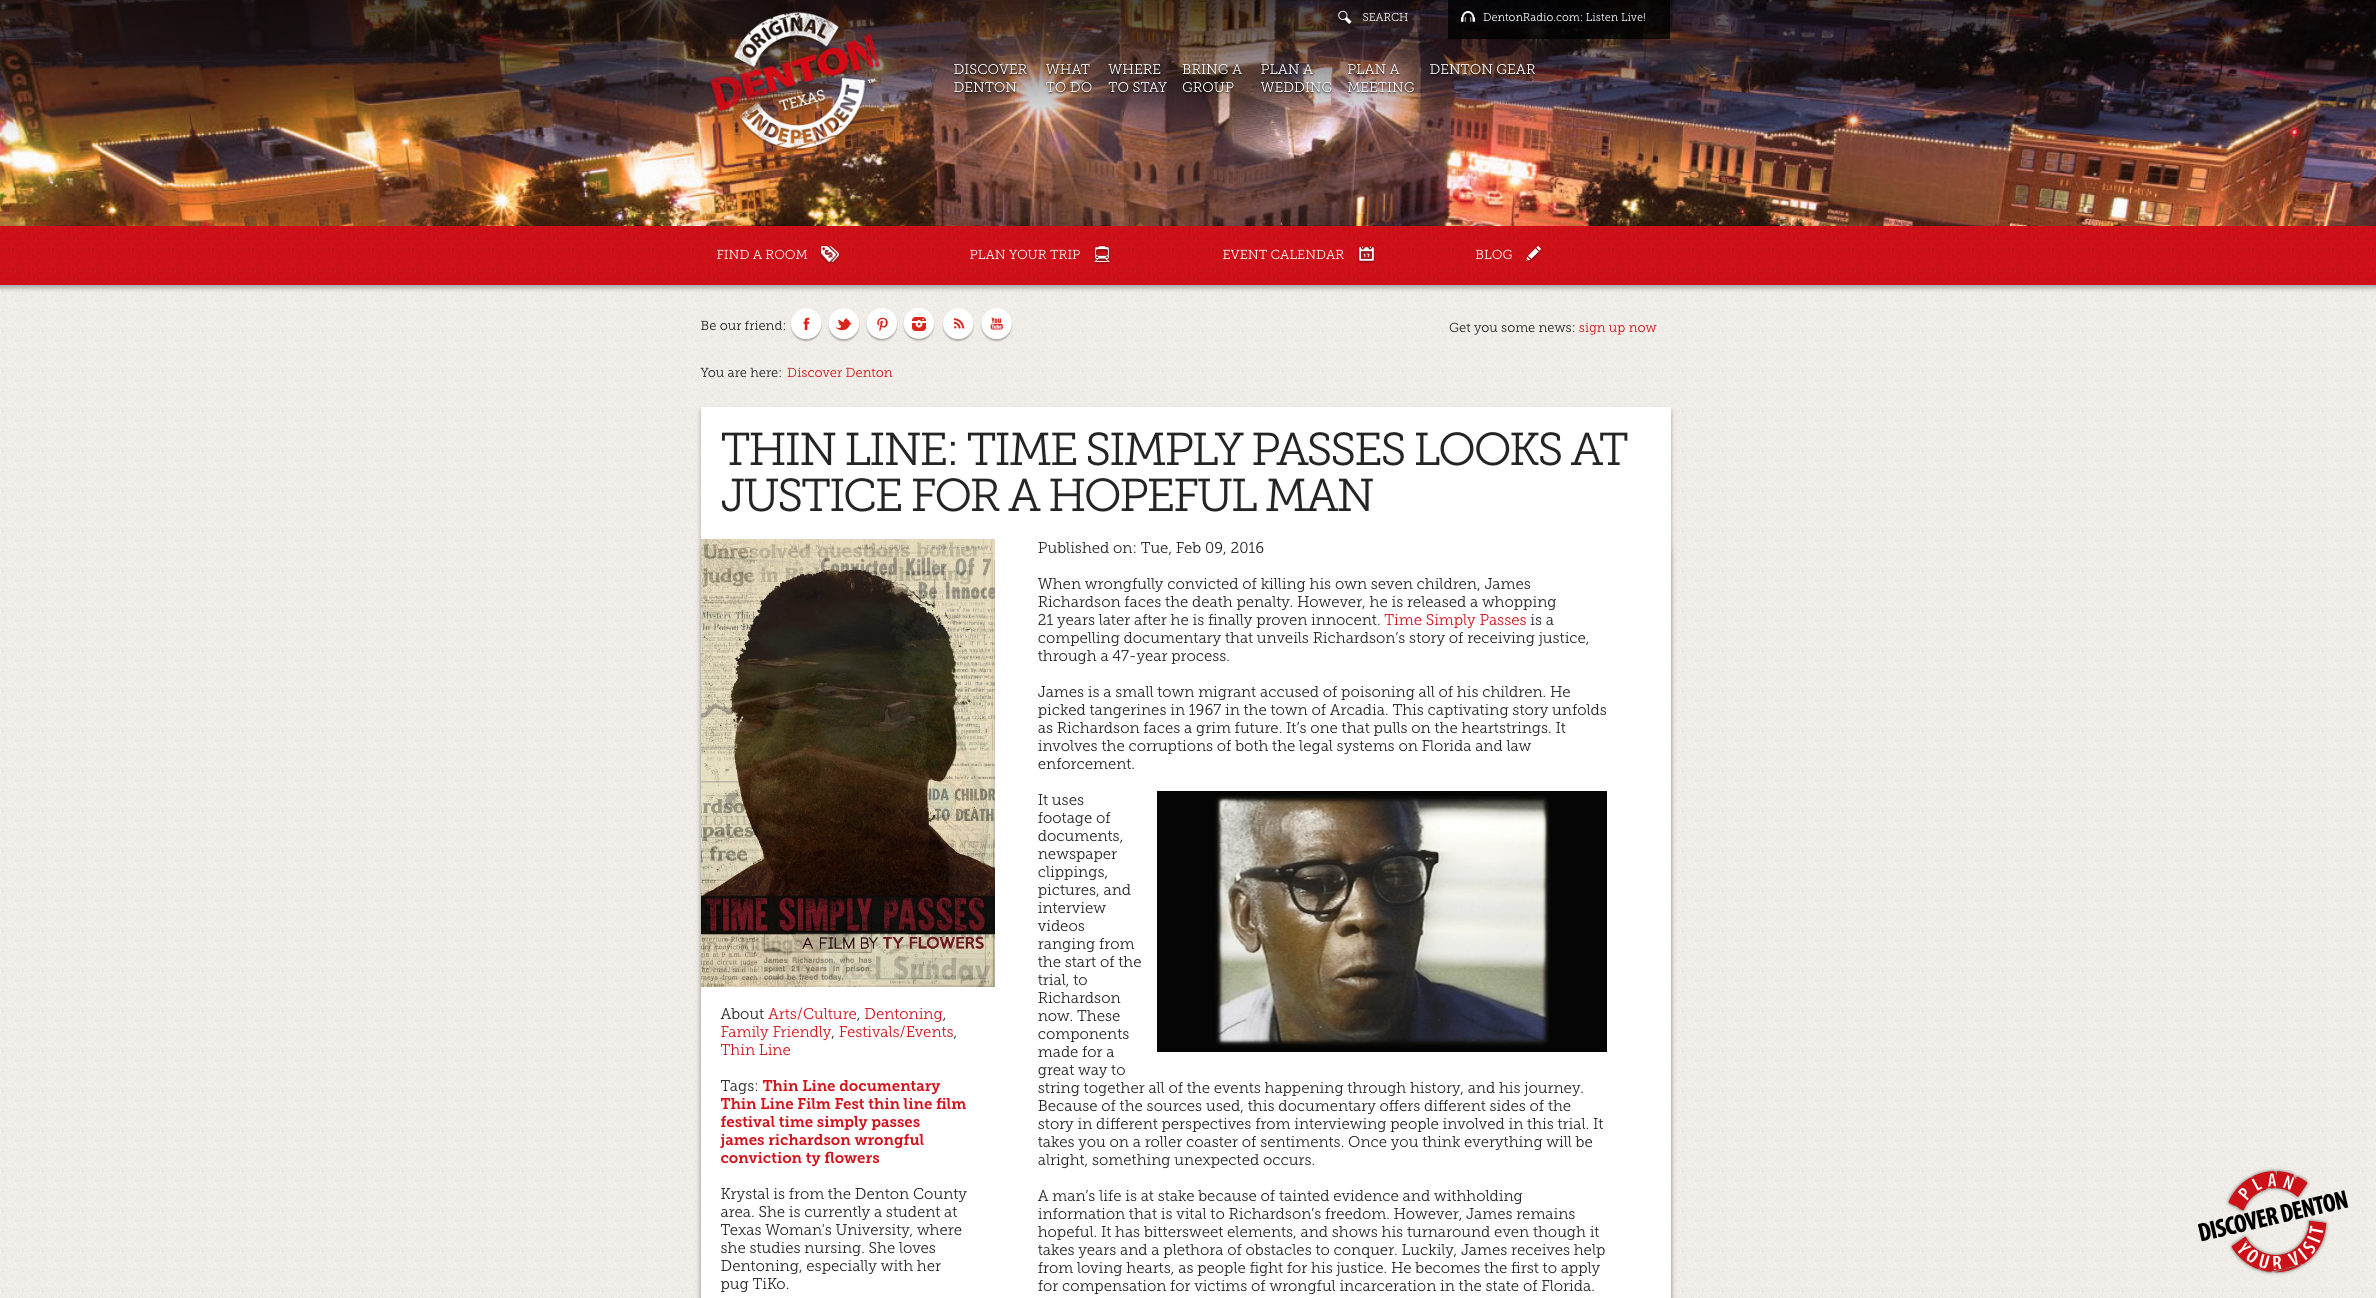 DISCOVER DENTON: Thin Line - TIME SIMPLY PASSES looks at justice for a hopeful man. February 17th, 2016.